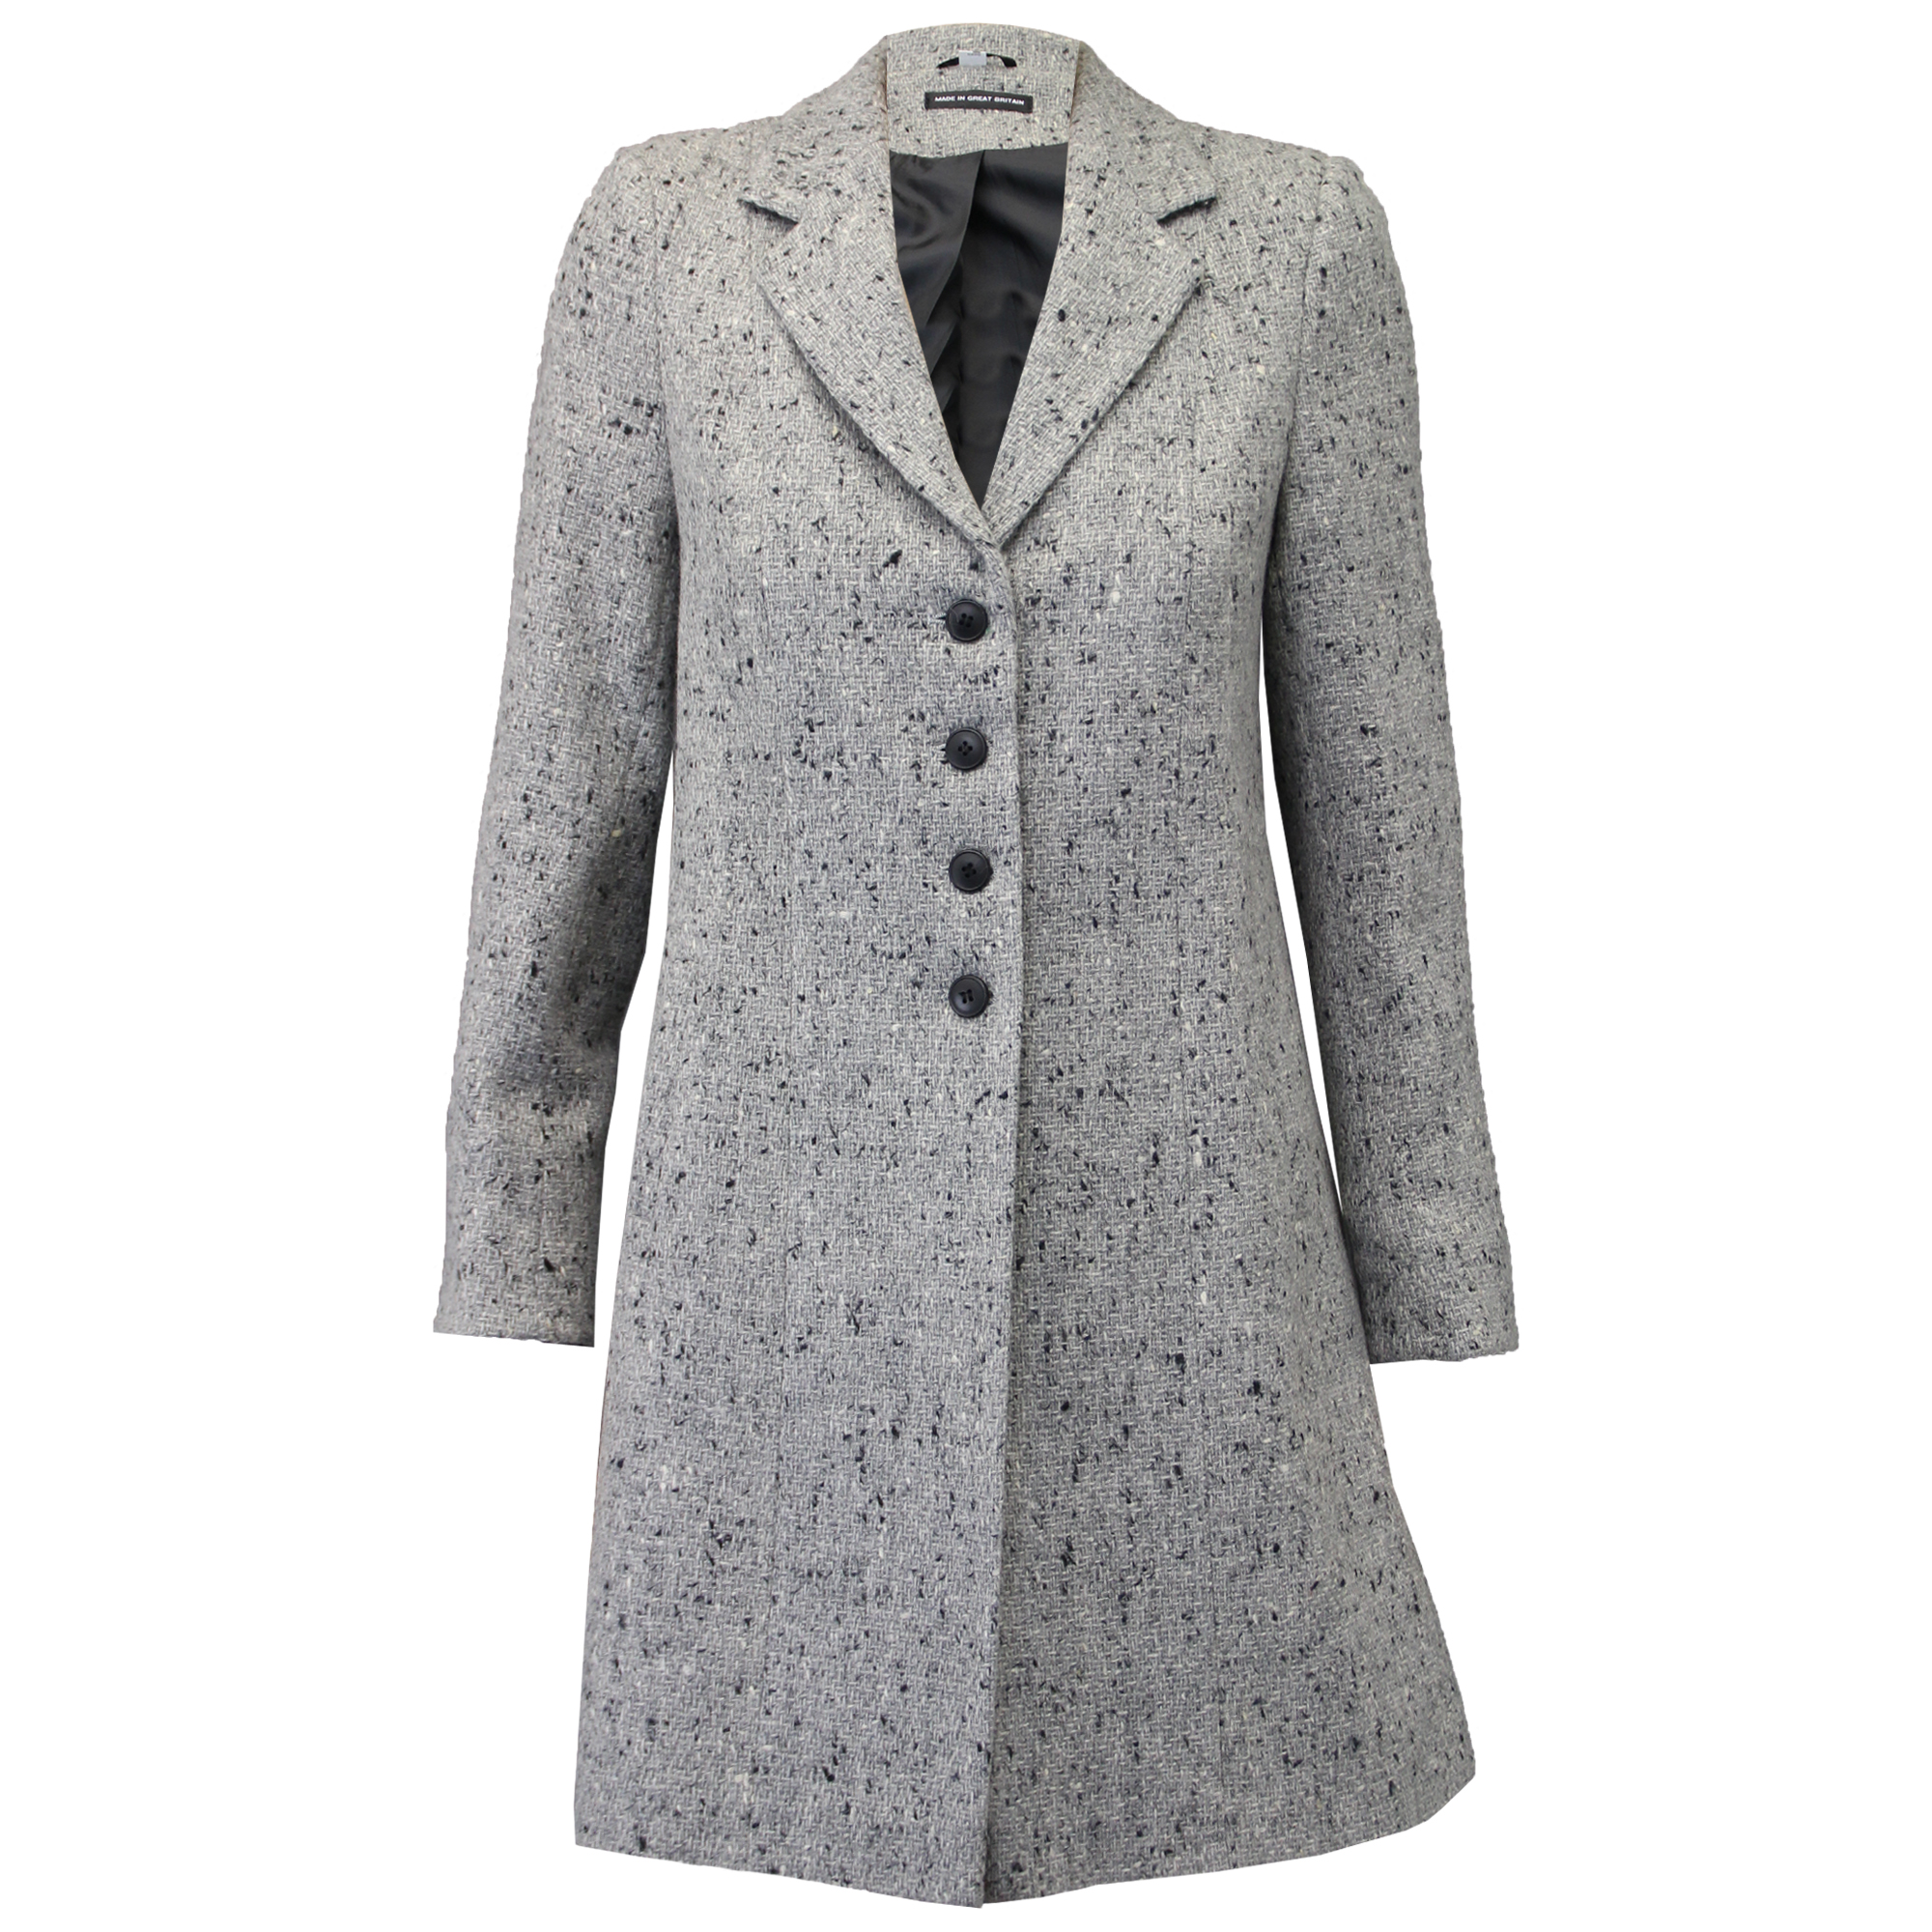 Find great deals on eBay for women warm winter coat. Shop with confidence.